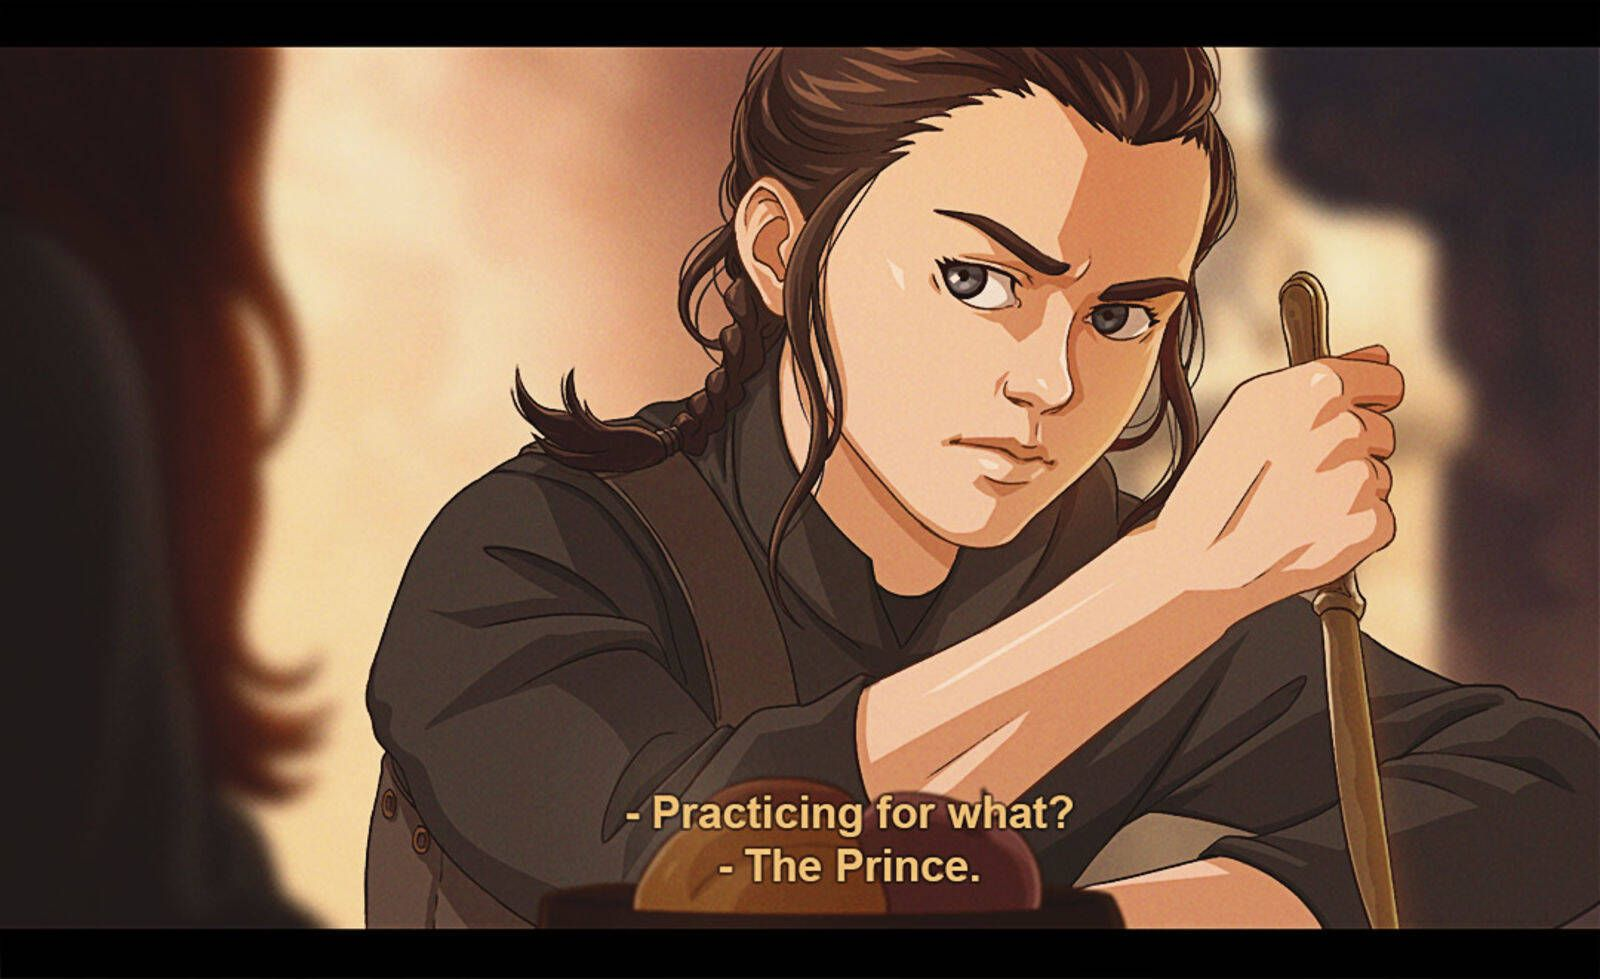 Here S The Proof Game Of Thrones Would Make A Great Animated